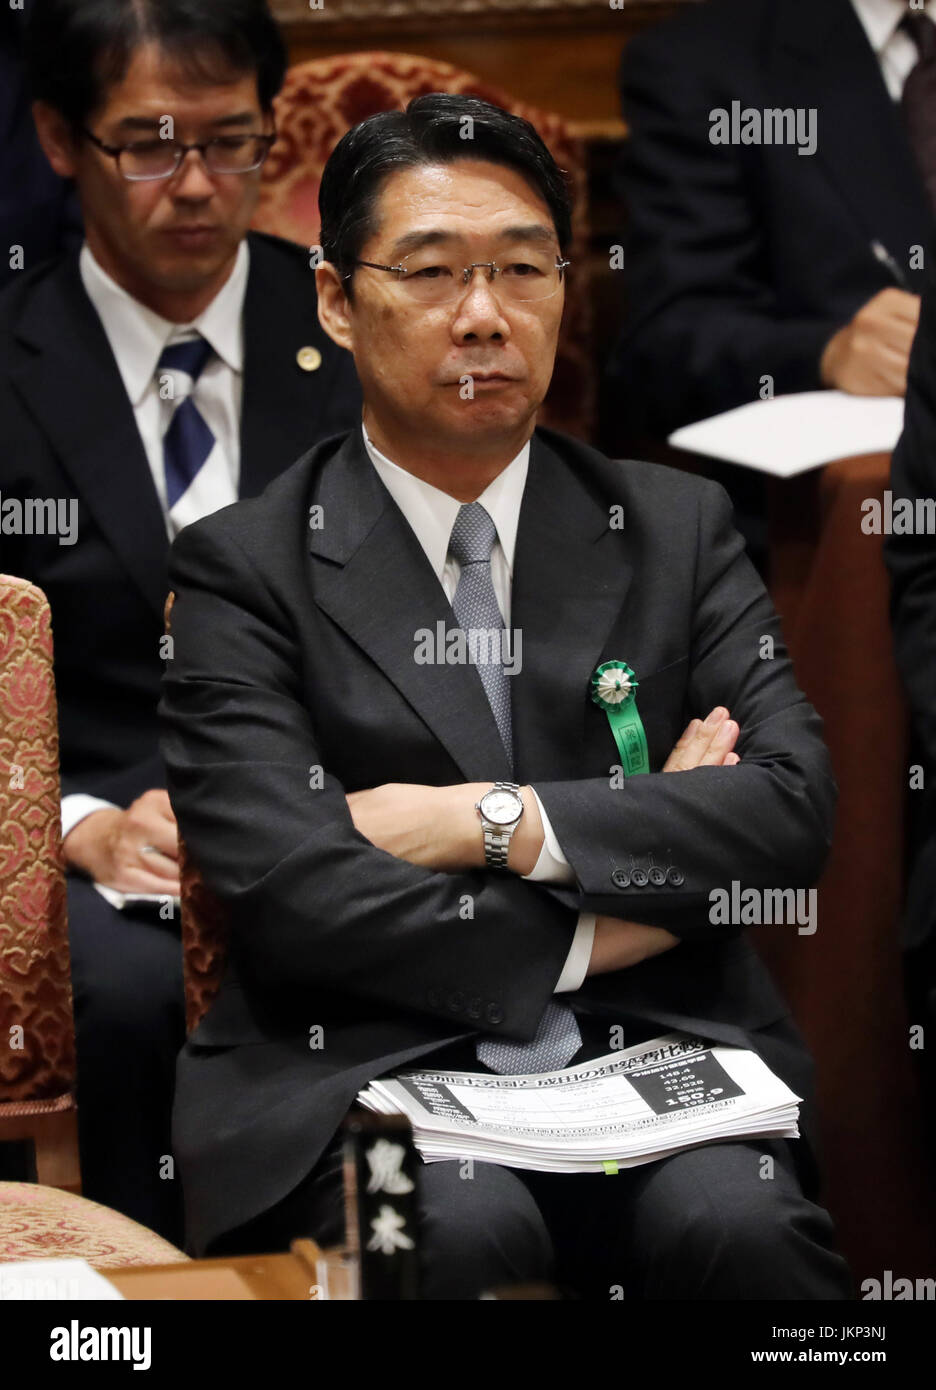 Tokyo, Japan. 24th July, 2017. Former Japanese Education Minister Kihei Maekawa listens to a question by an opposition - Stock Image